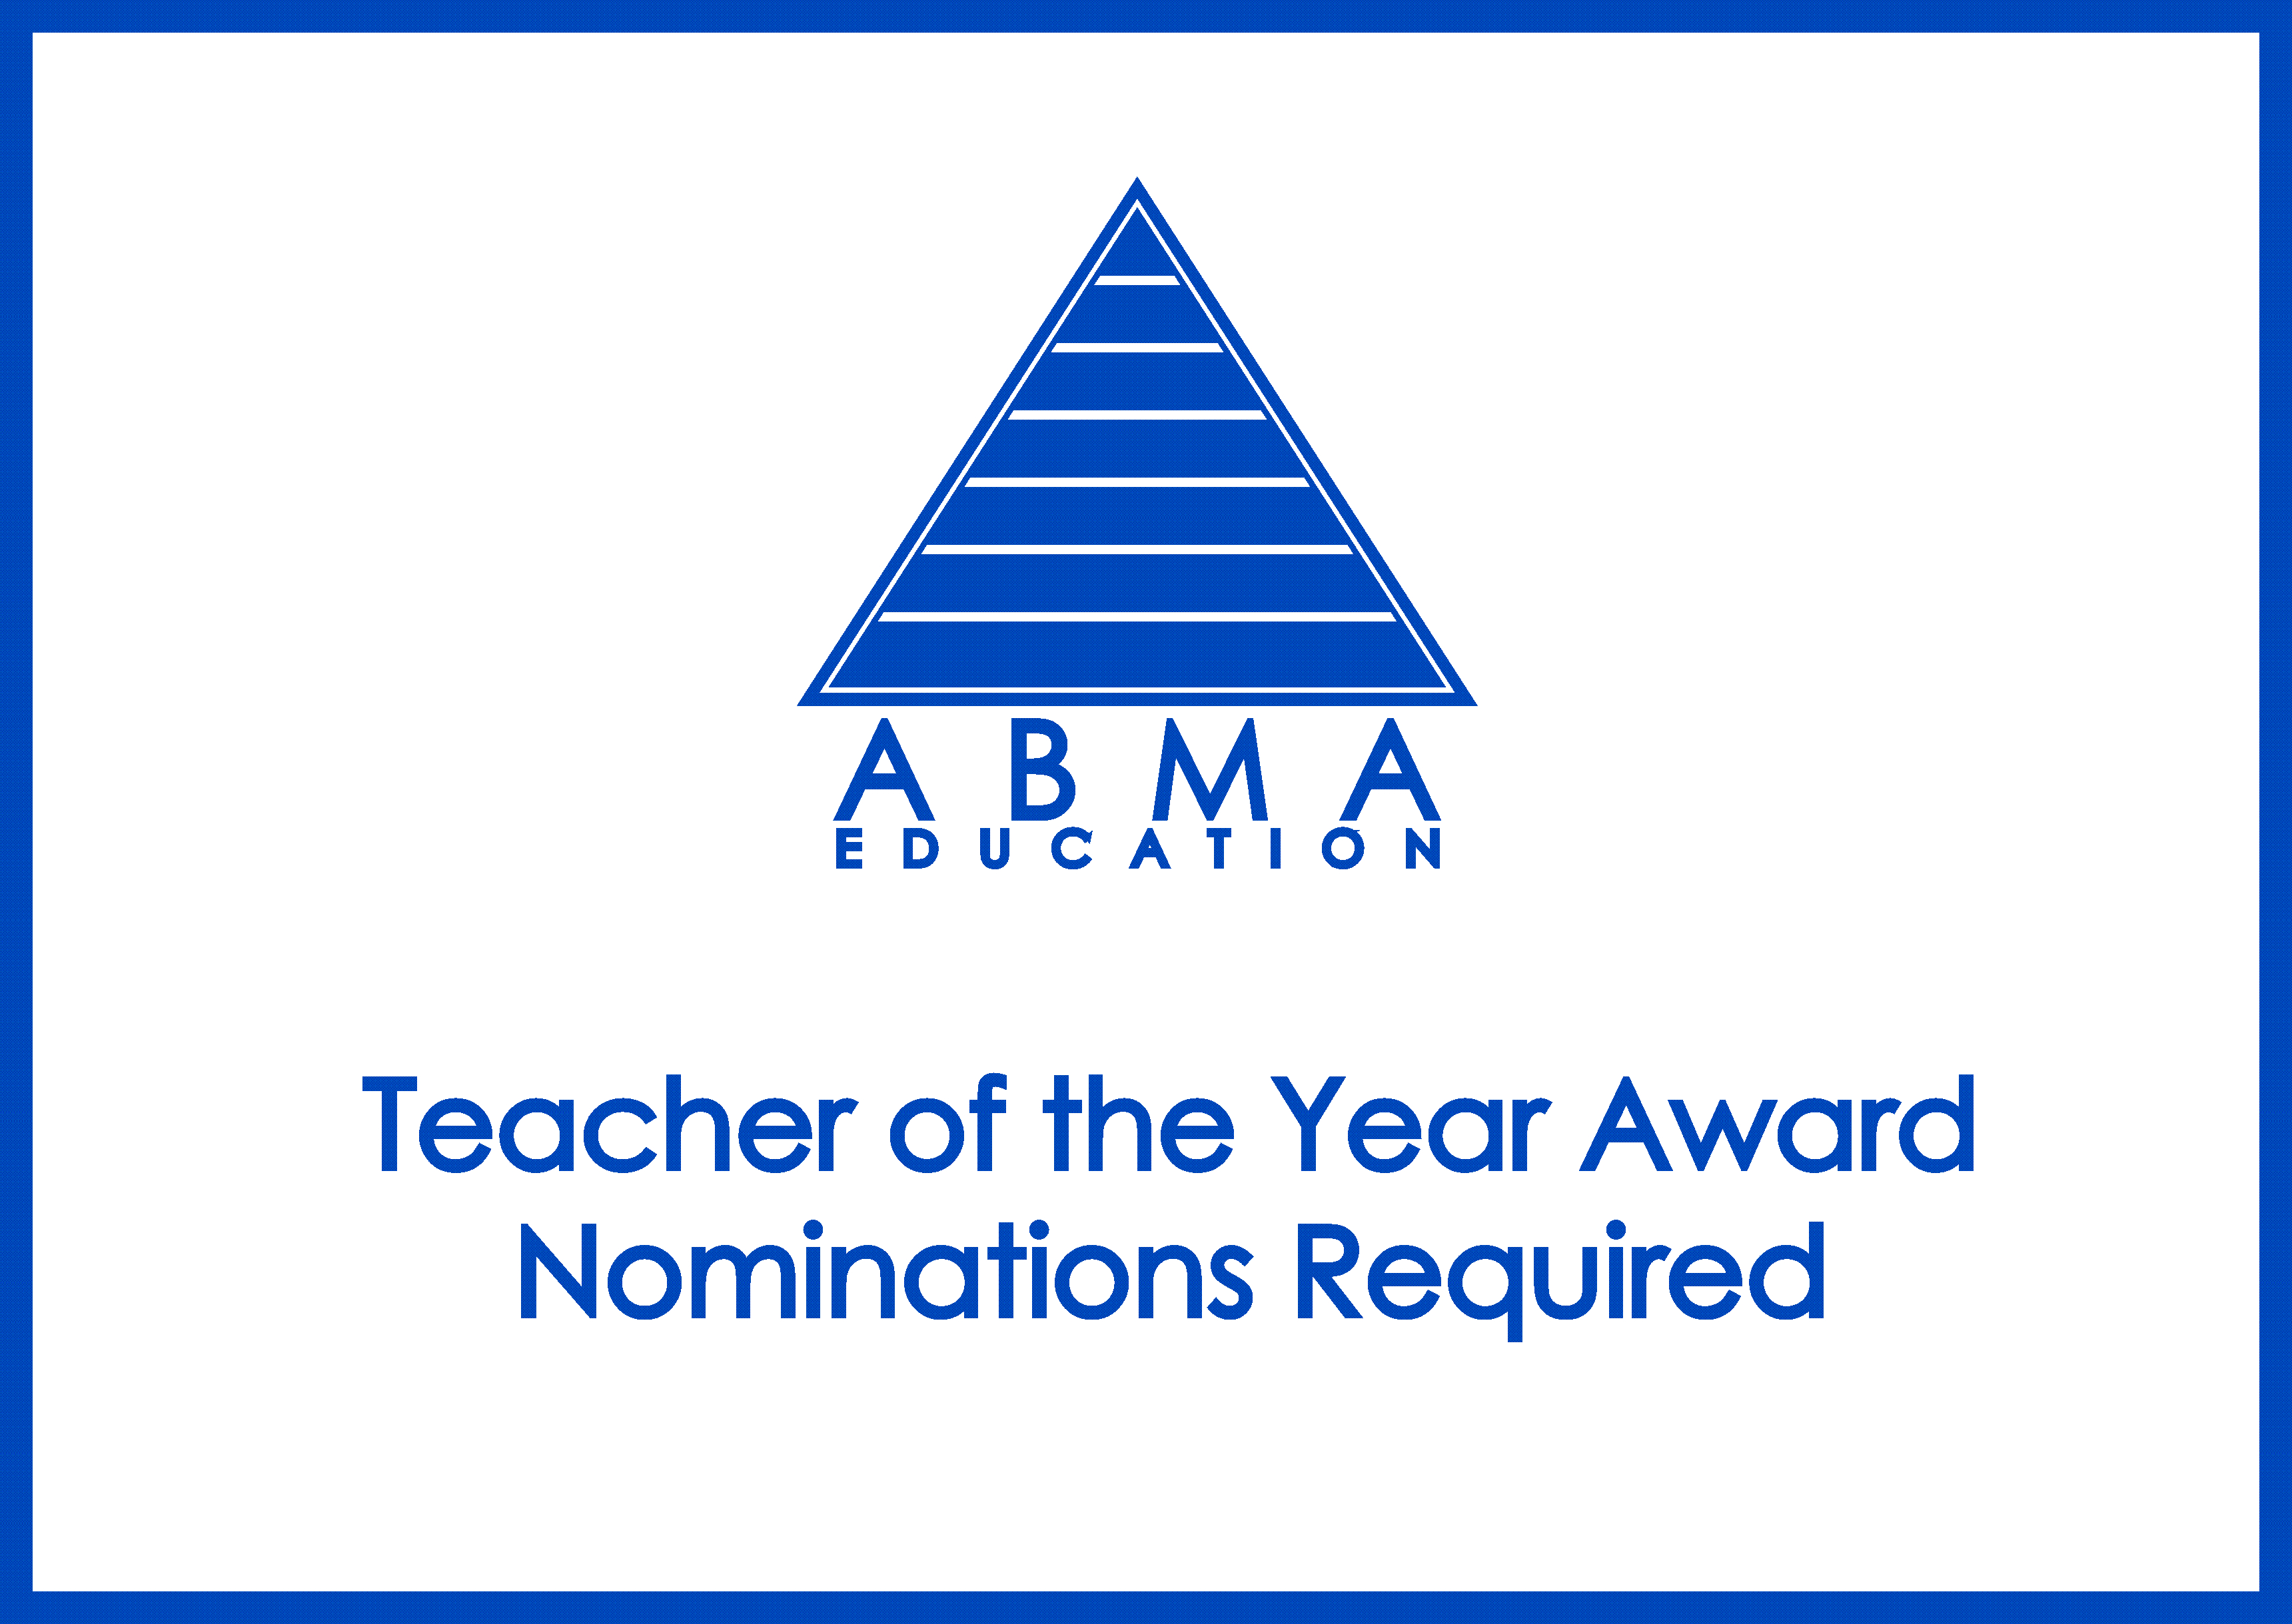 ABMA Education Teacher of the Year Award Nominations Required